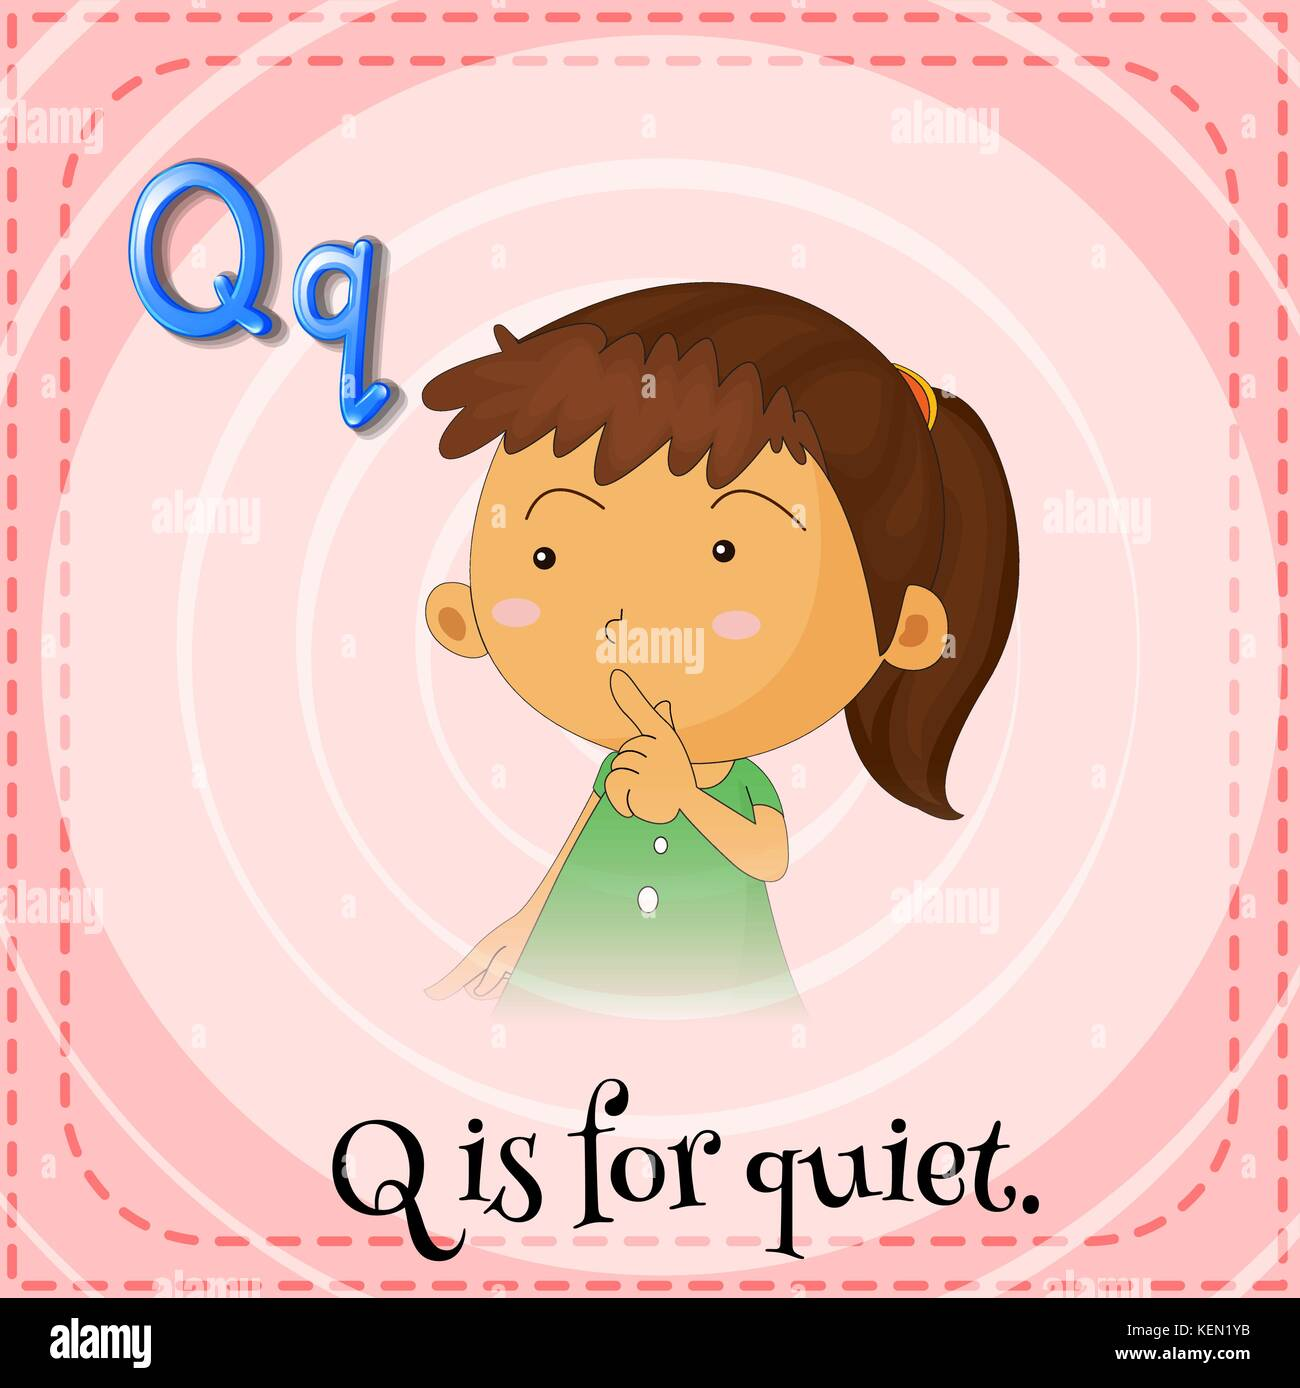 Illustration Of A Letter Q Is For Quiet Stock Vector Image